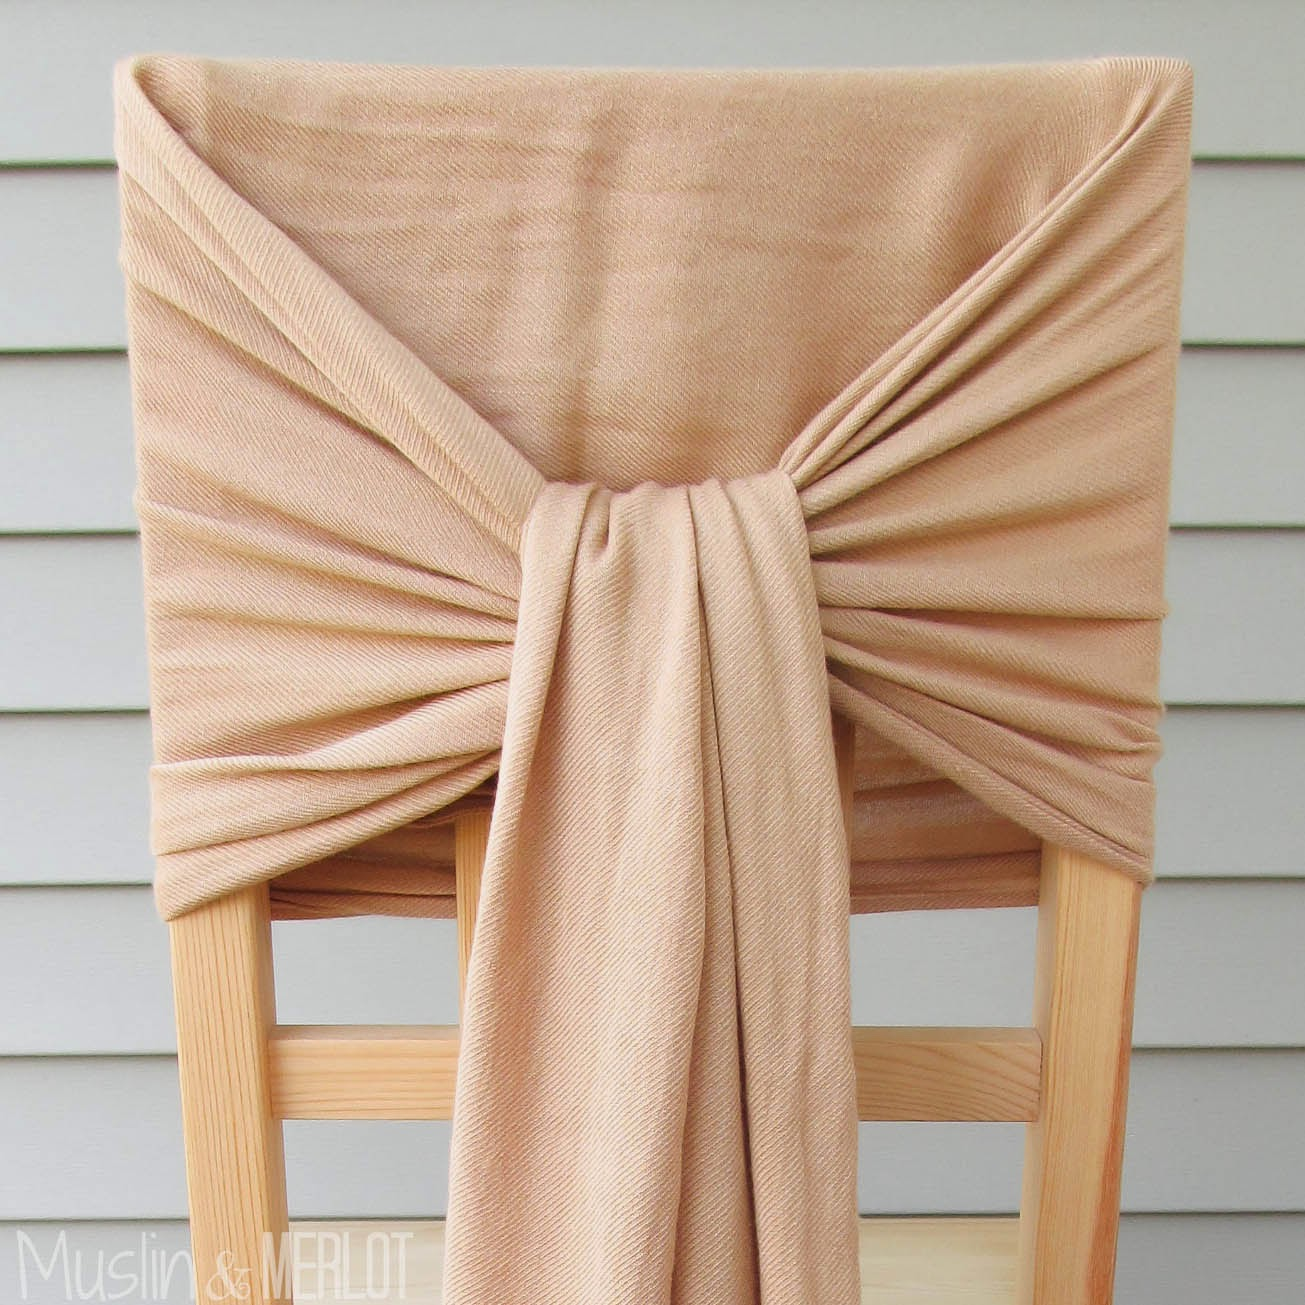 How To Decorate Chairs With Scarves Muslin And Merlot Diy Chair Covers For Baby Shower Folding No Sew Back